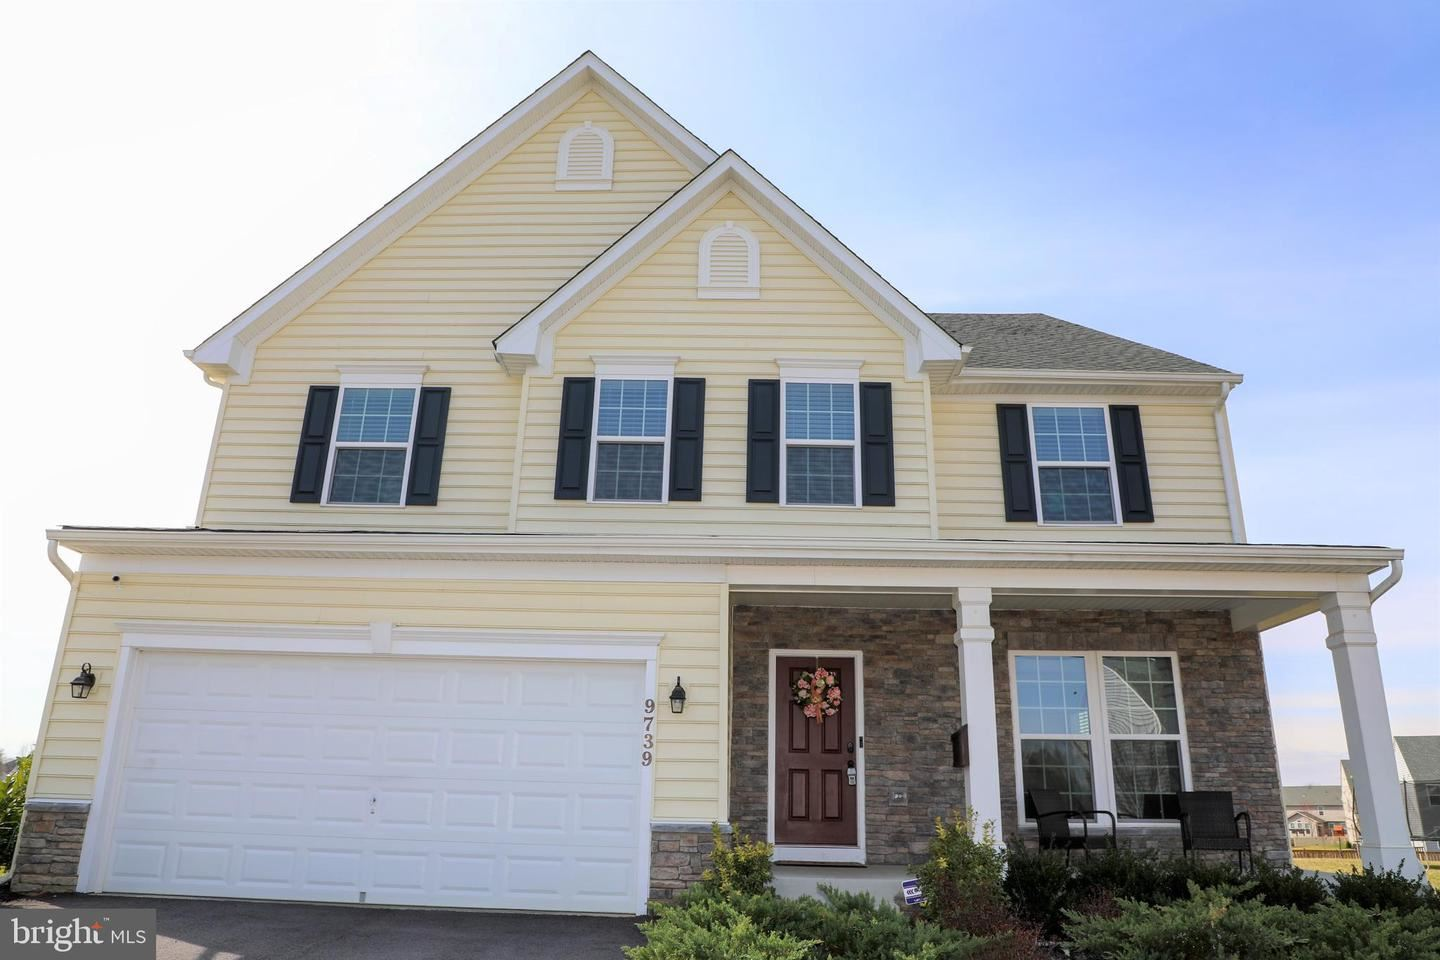 9739 DUMBARTON DR, Hagerstown, MD 21740 - #: MDWA169384